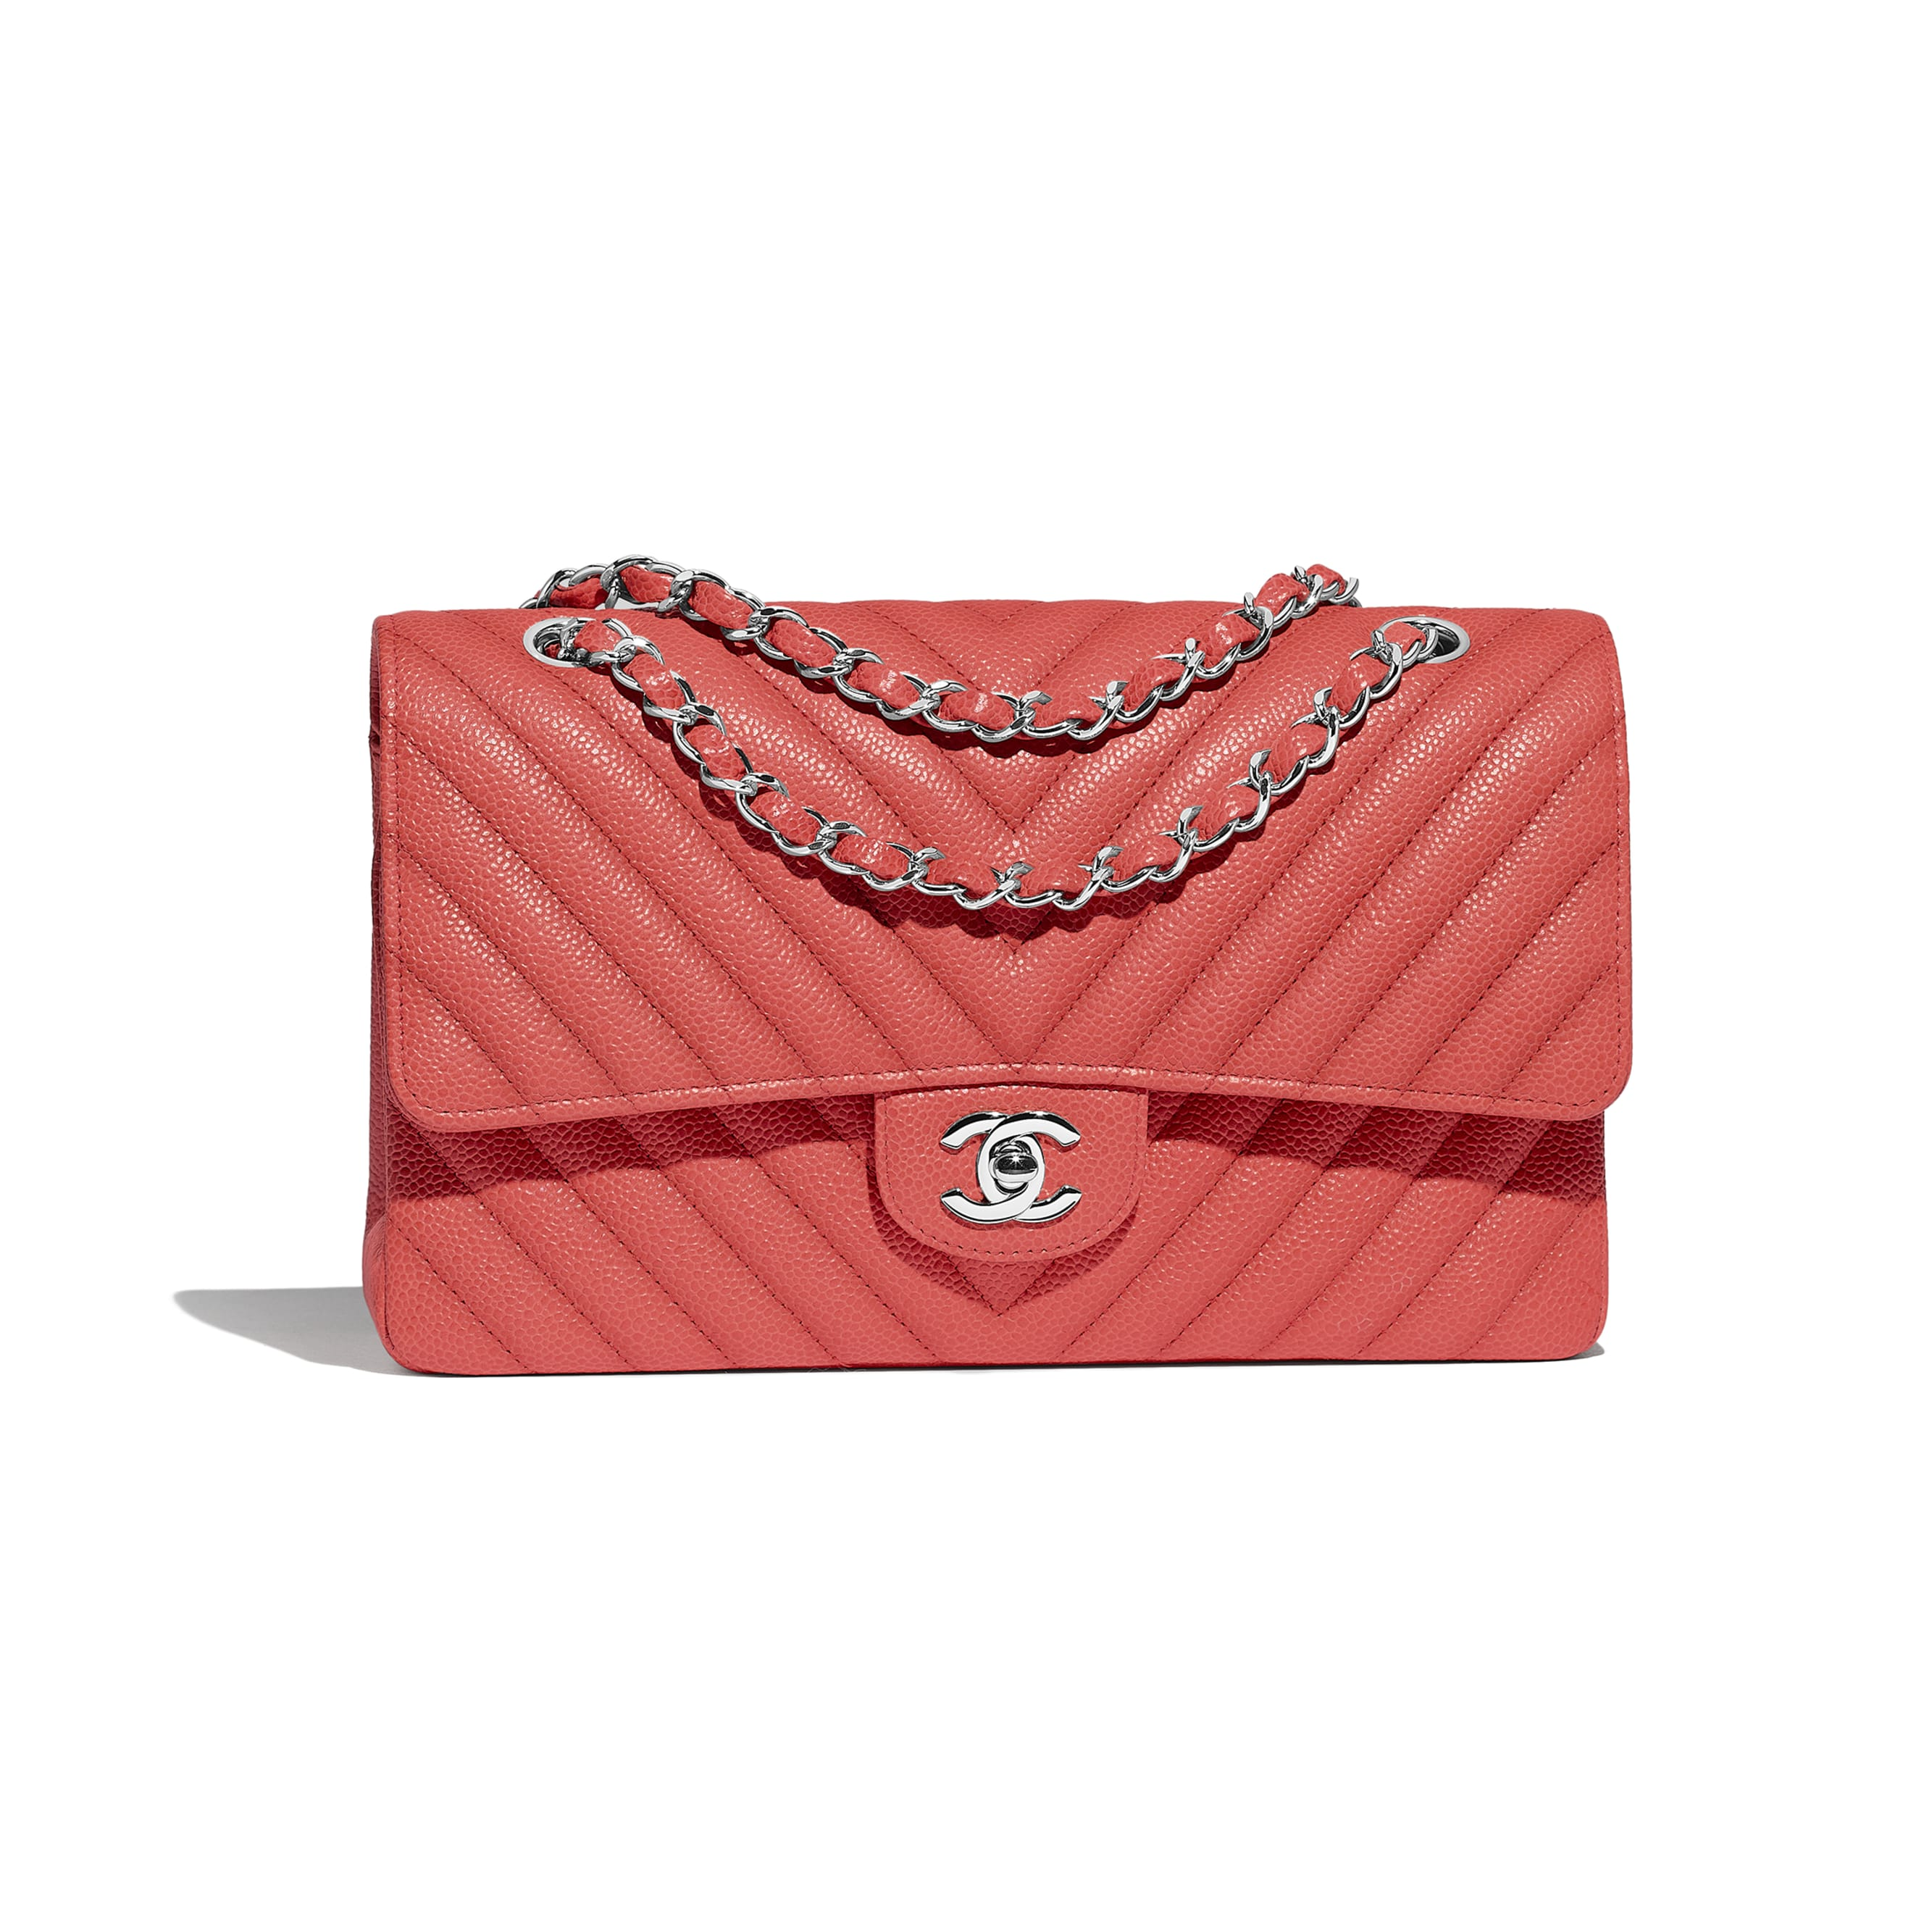 Classic Handbag - Coral - Grained Calfskin & Silver-Tone Metal - Default view - see standard sized version